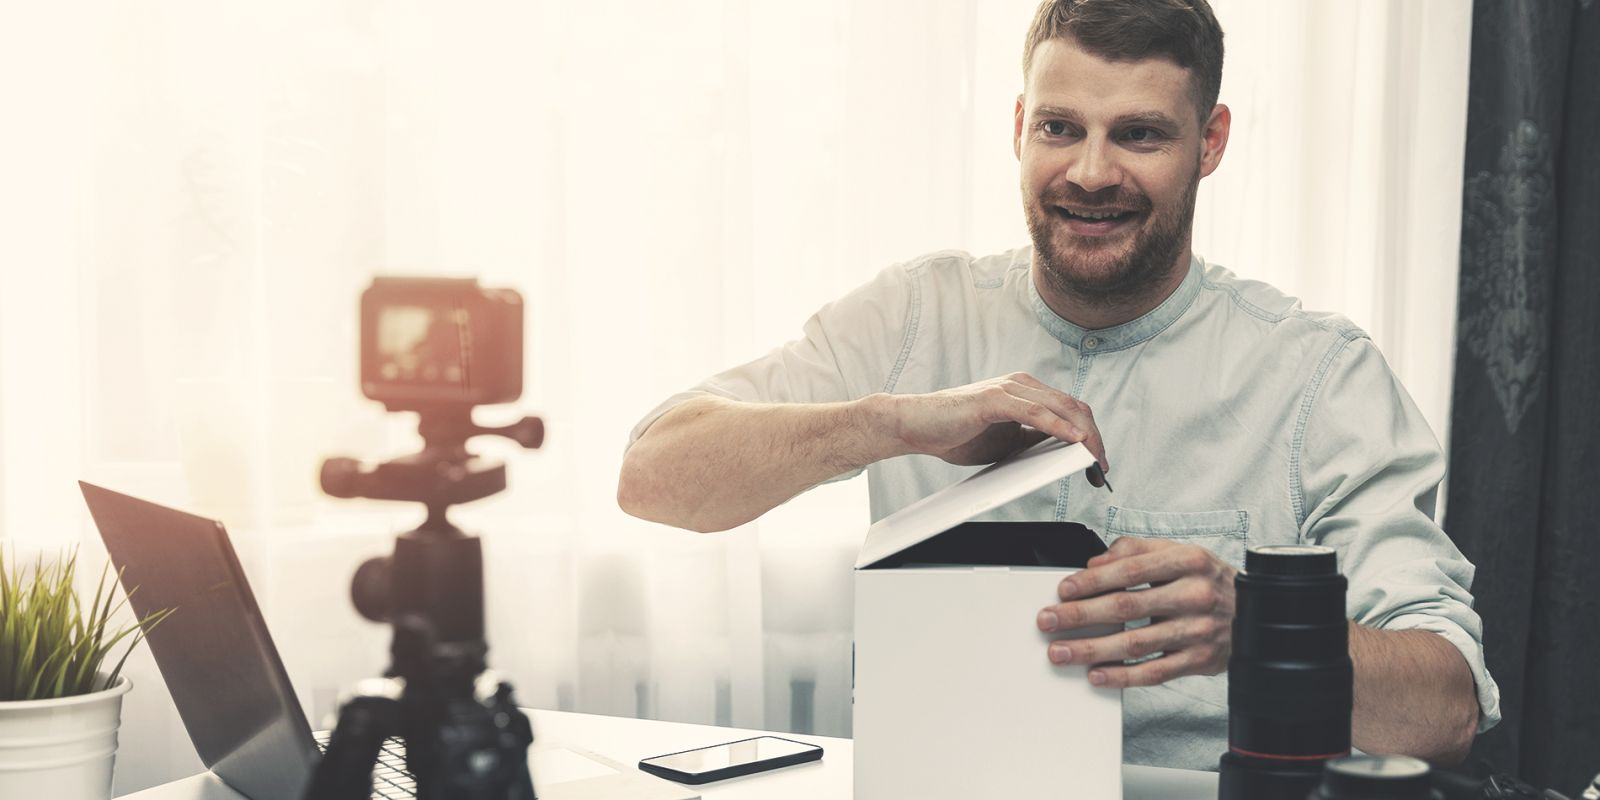 Image of a man opening a box whilst filming himself for the product video production page.